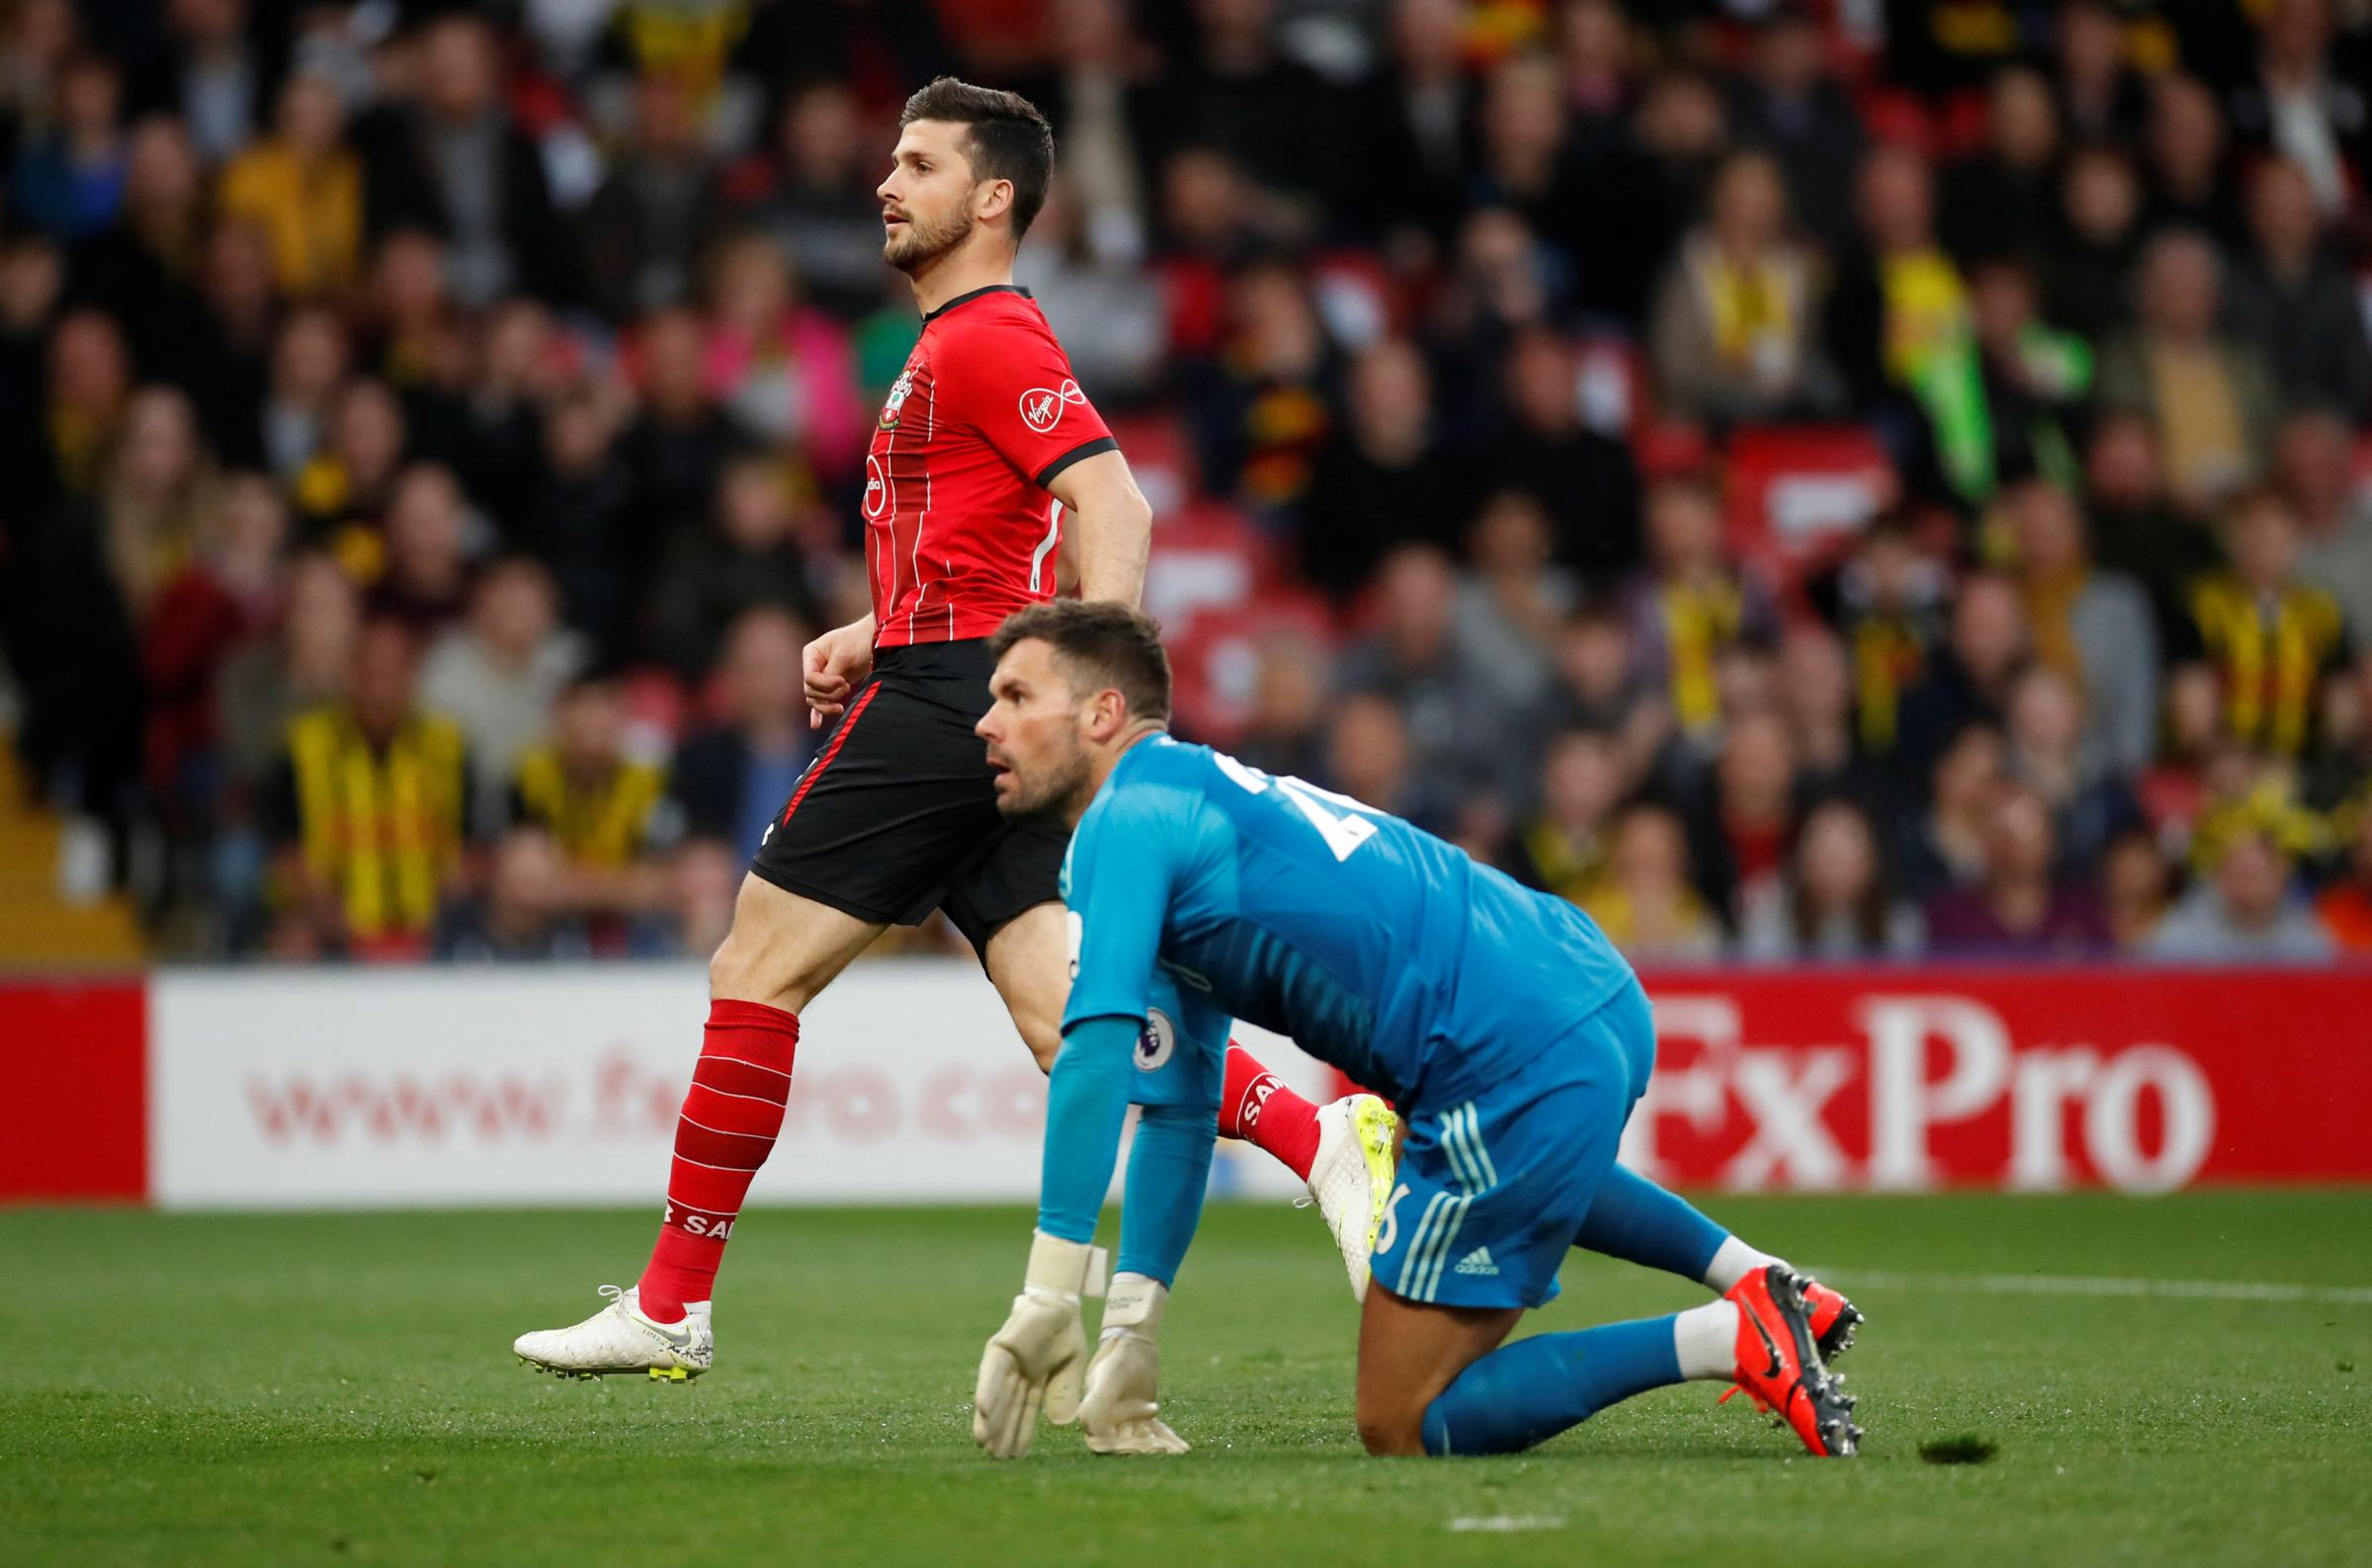 Shane Long (in red) scored the fastest goal in Premier League history at Vicarage Road last night. Credit: Action Images